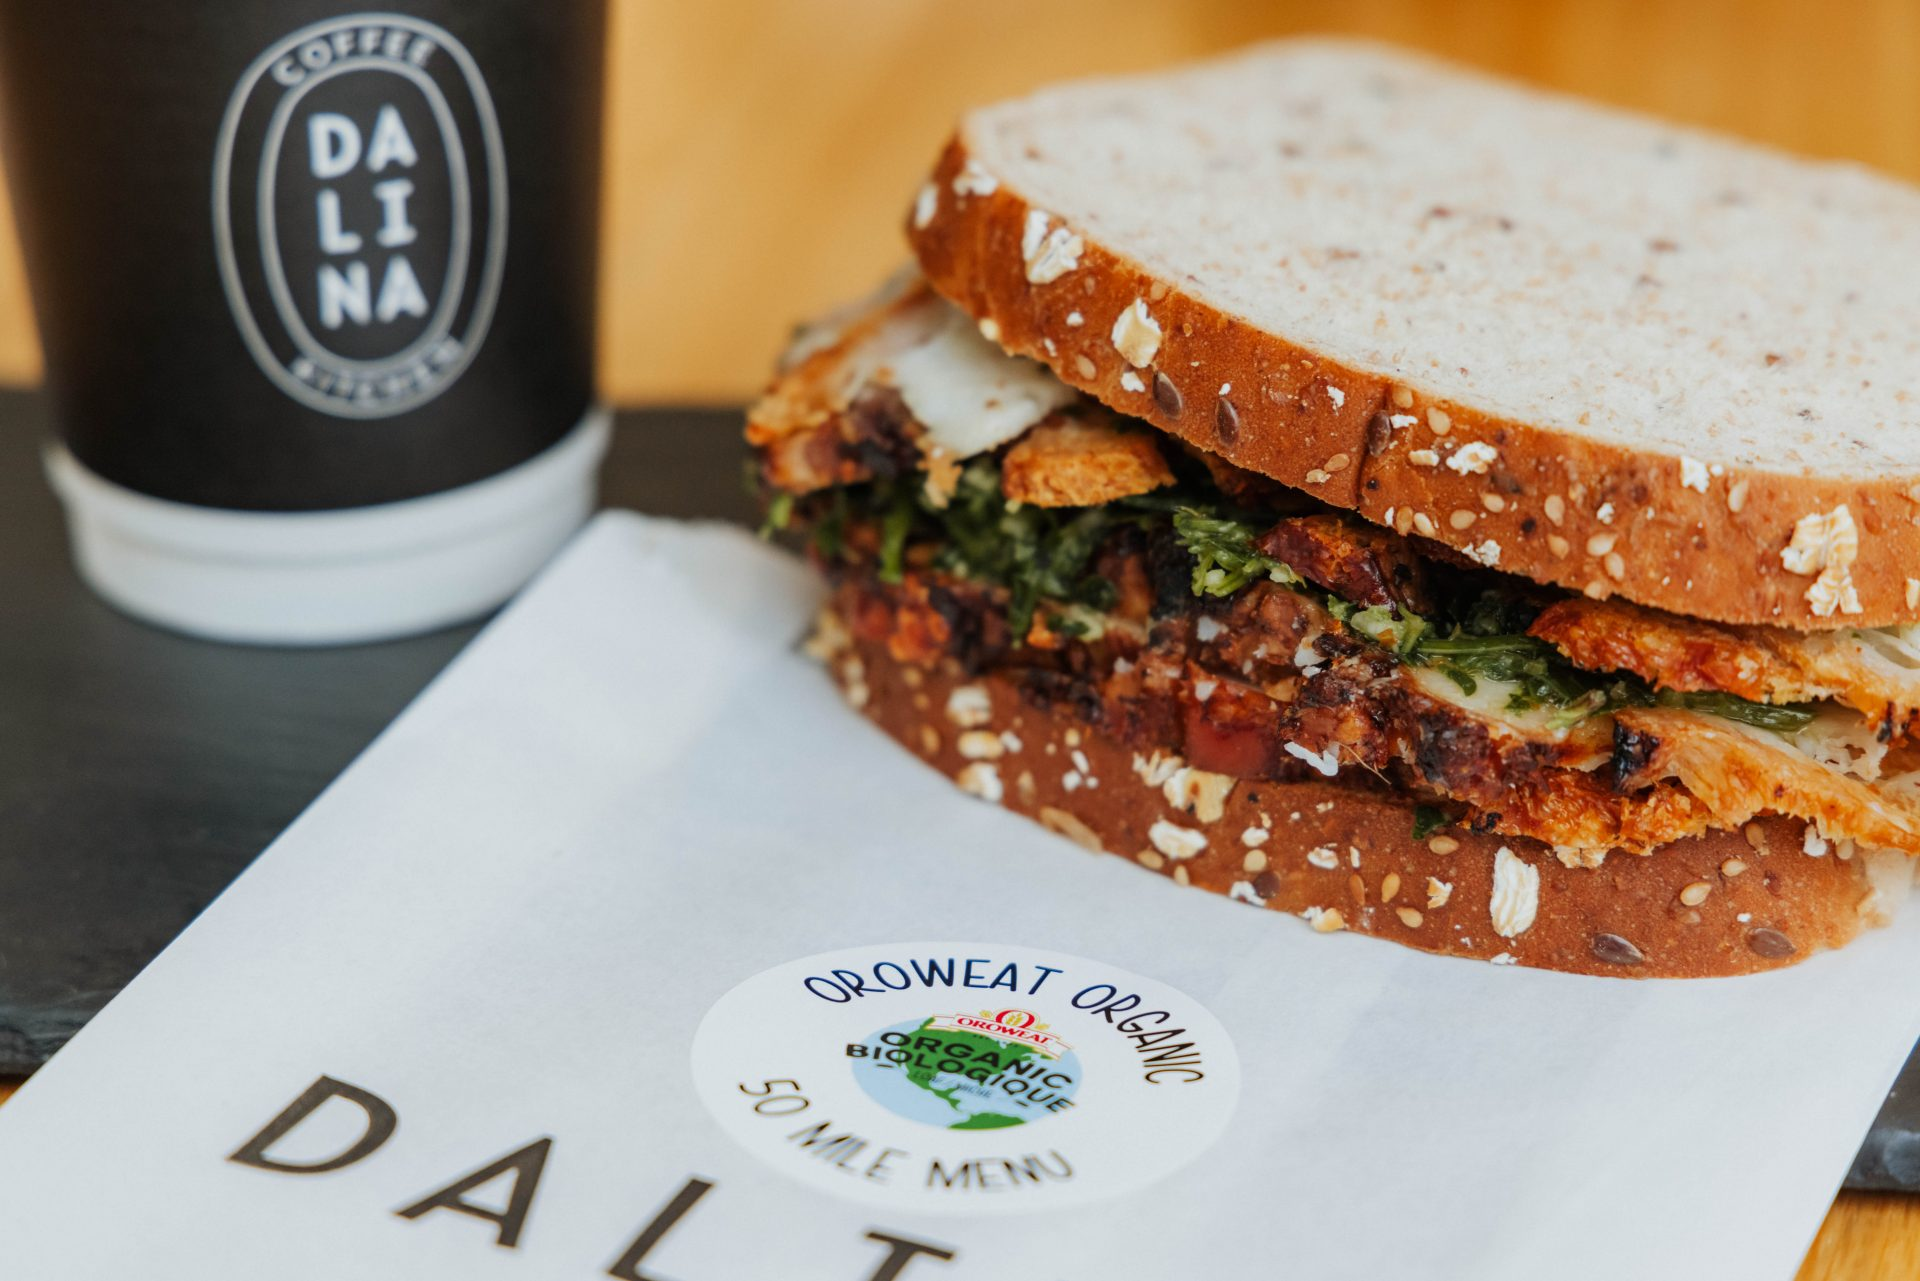 Locally-inspired sustainable sandwich menu launches in Vancouver